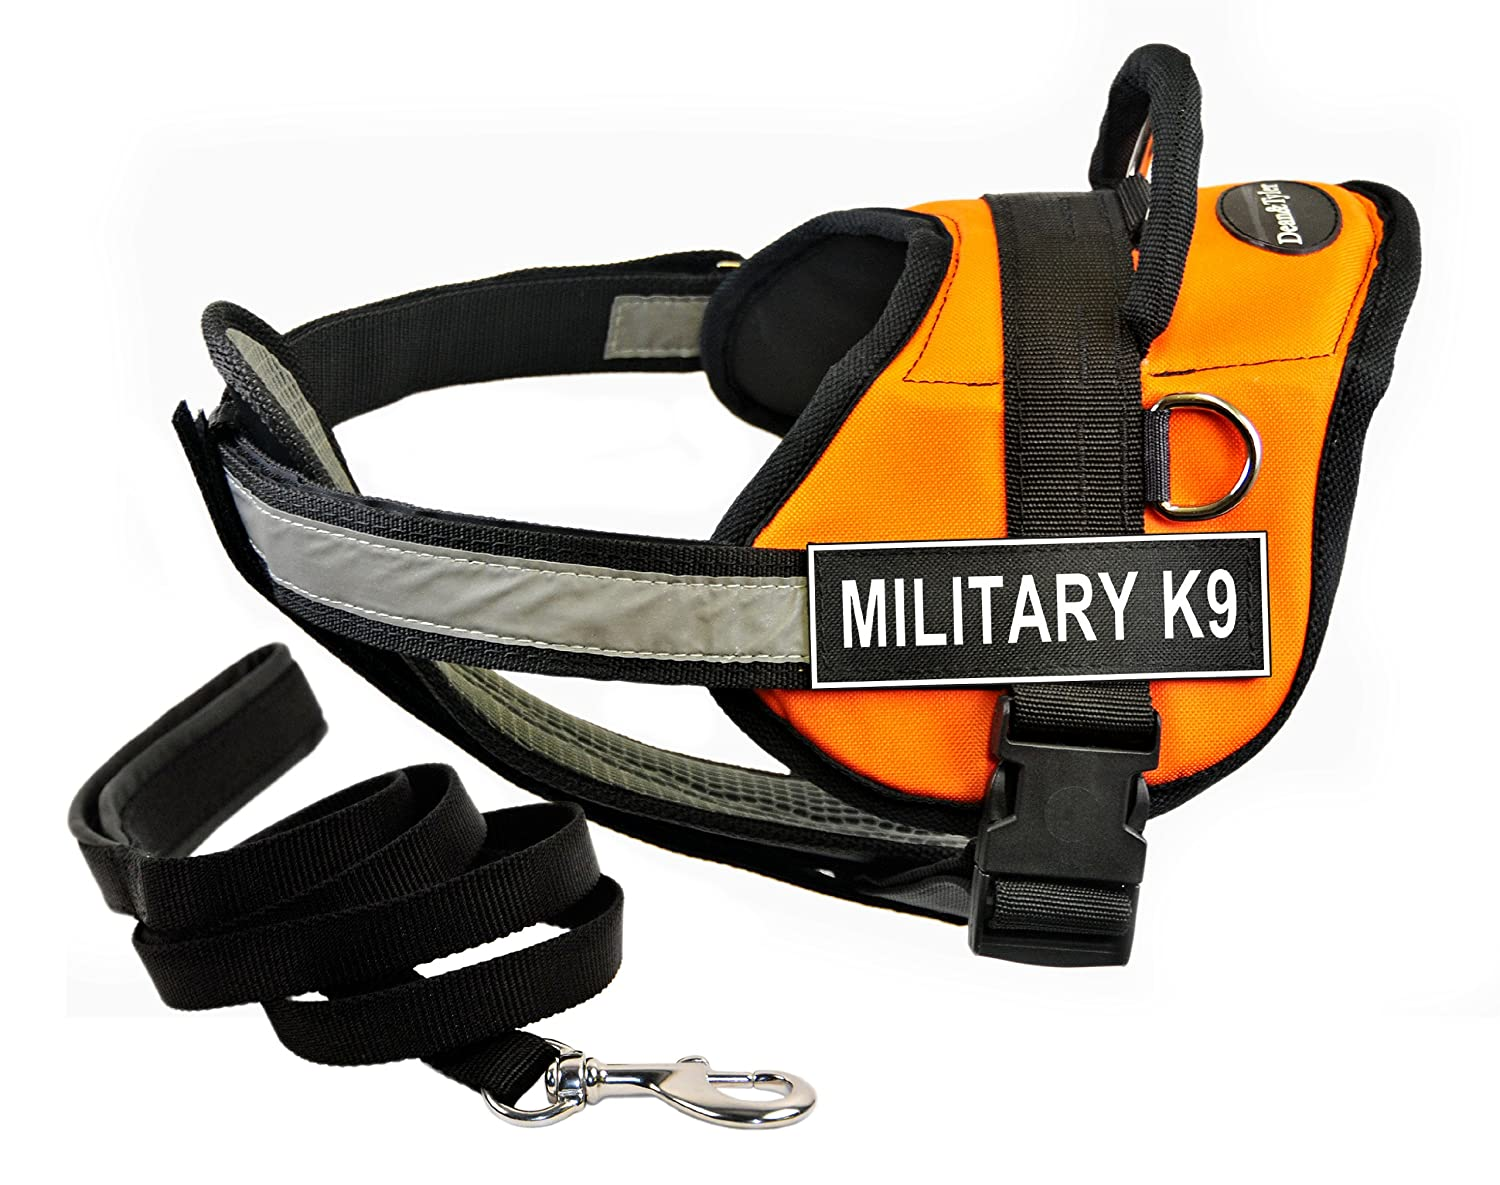 Dean & Tyler's DT Works orange MILITARY K9 Harness with Chest Padding, X-Small, and Black 6 ft Padded Puppy Leash.